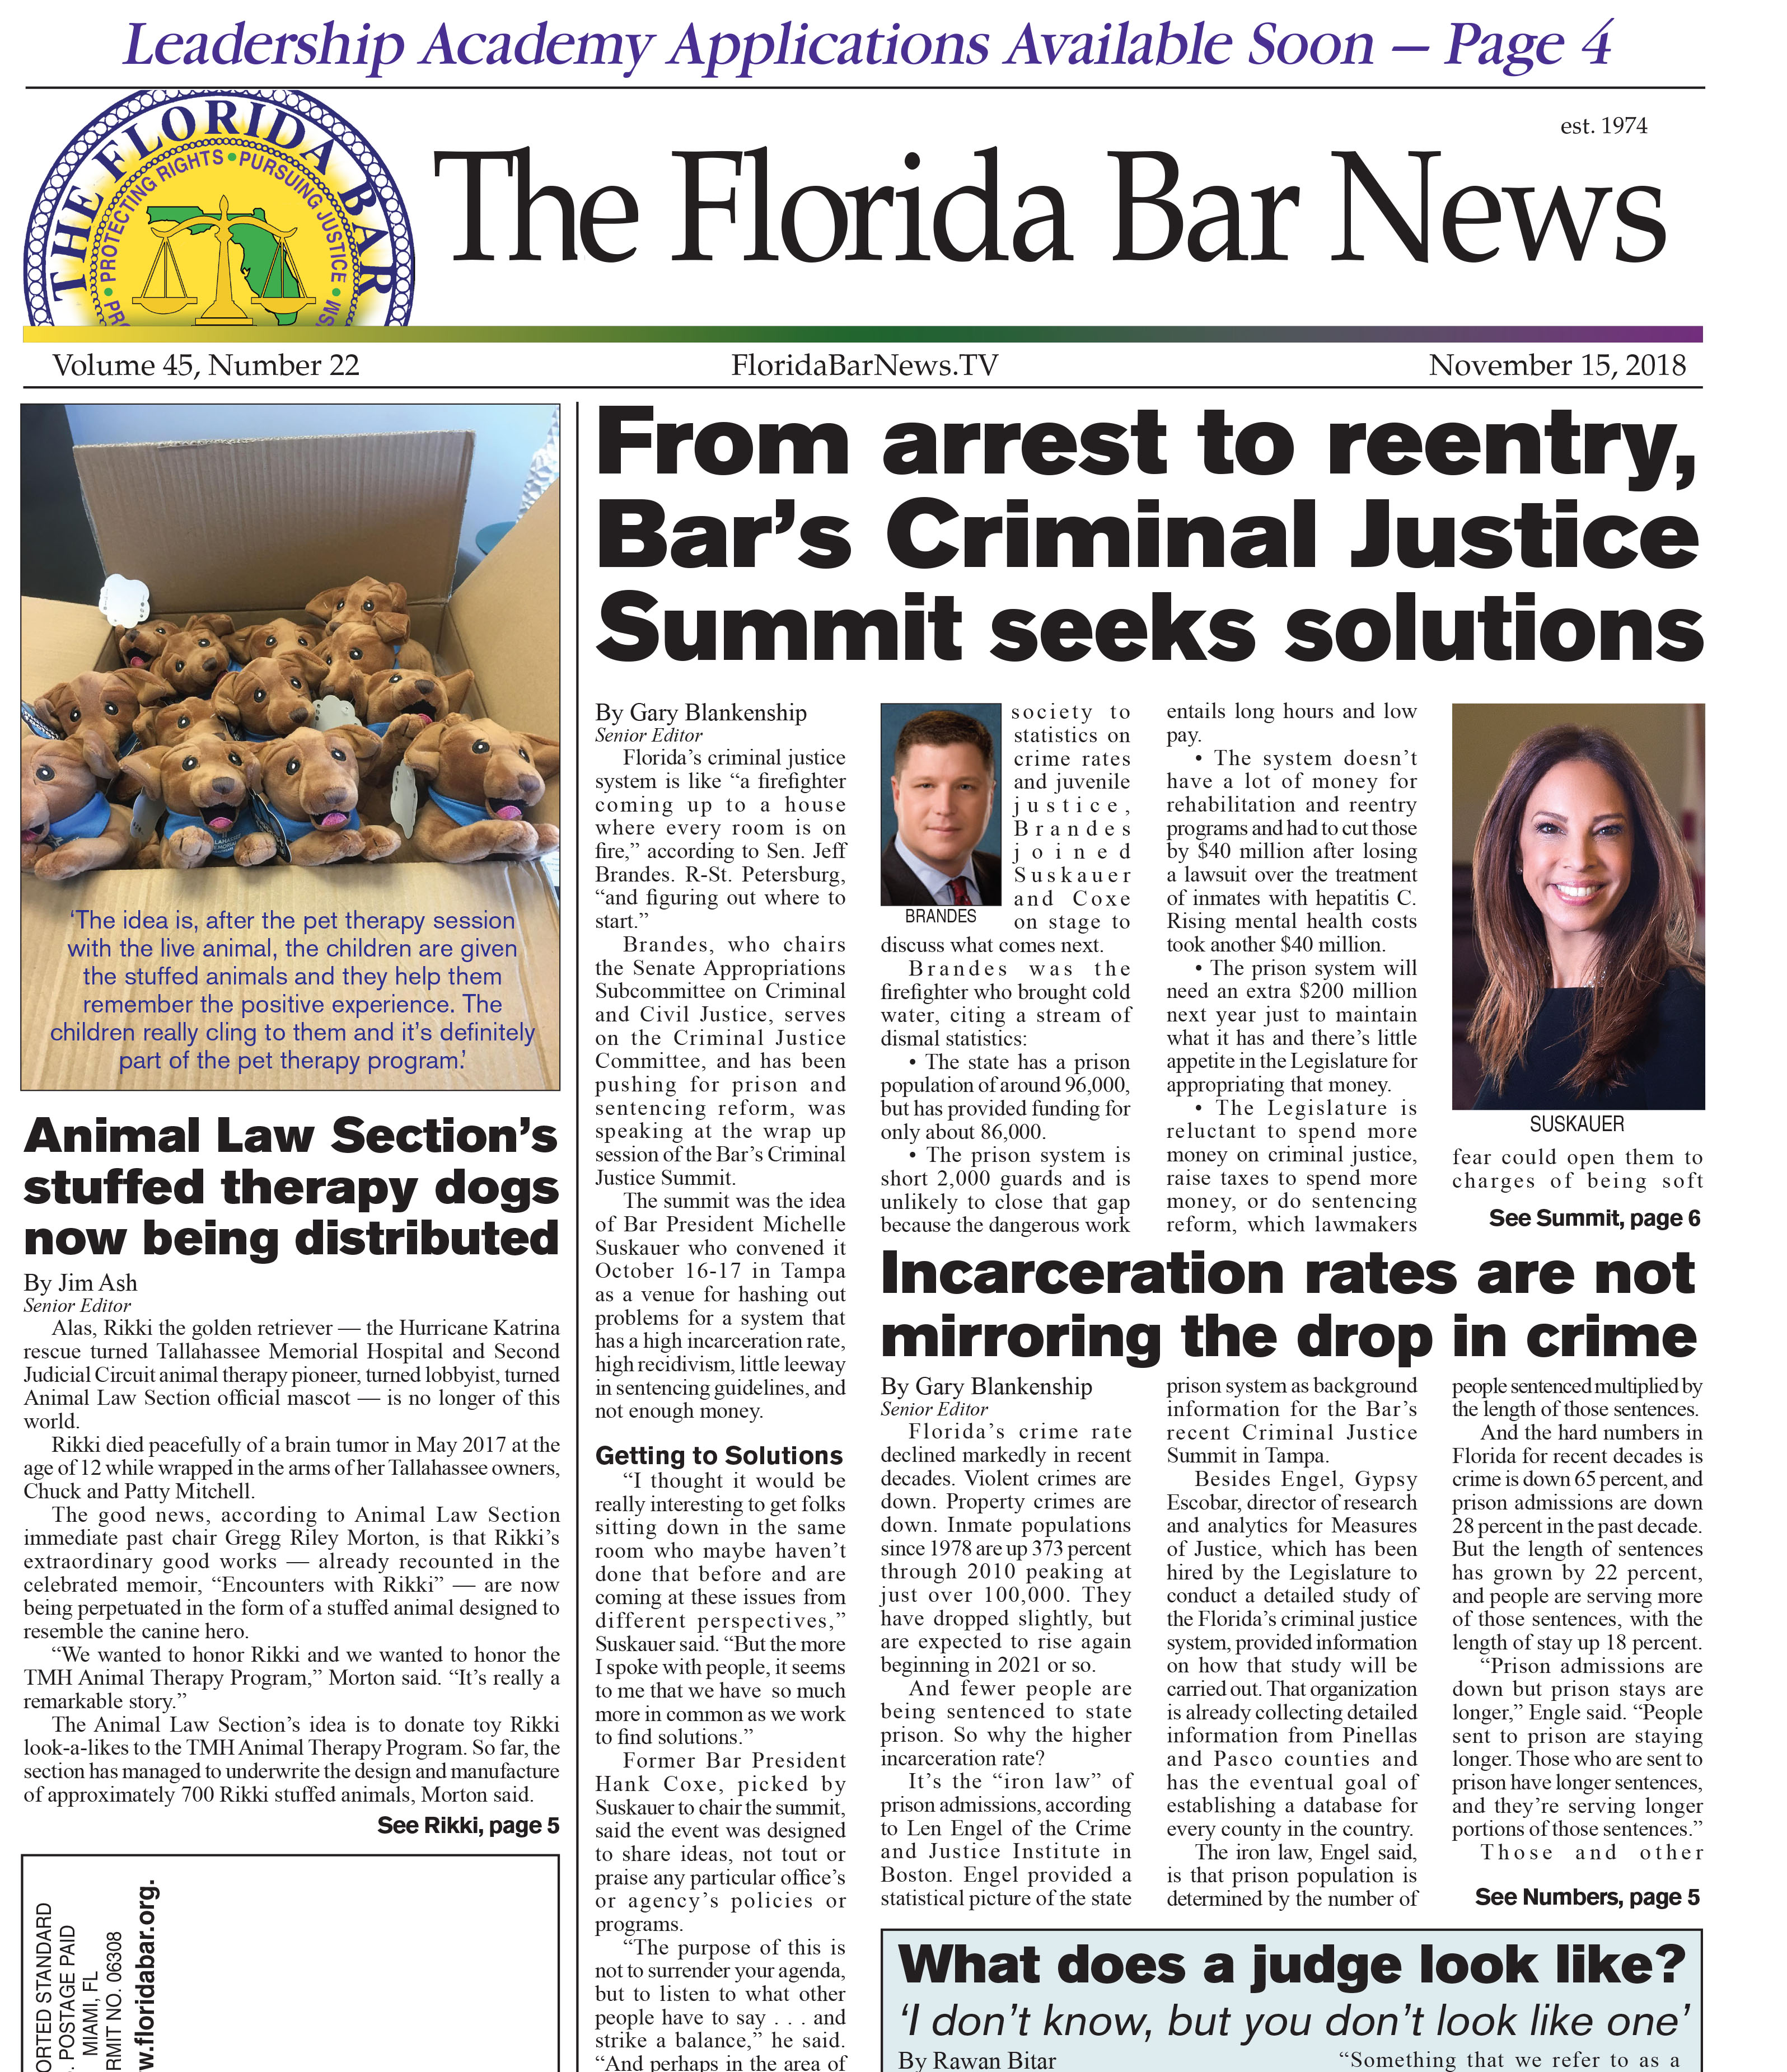 The Nov. 15 Bar News with stories including Criminal Justice Summit wrap-up, Animal Law Section's toy therapy dog project, and YLD's Disaster Relief Hotline needs volunteers.